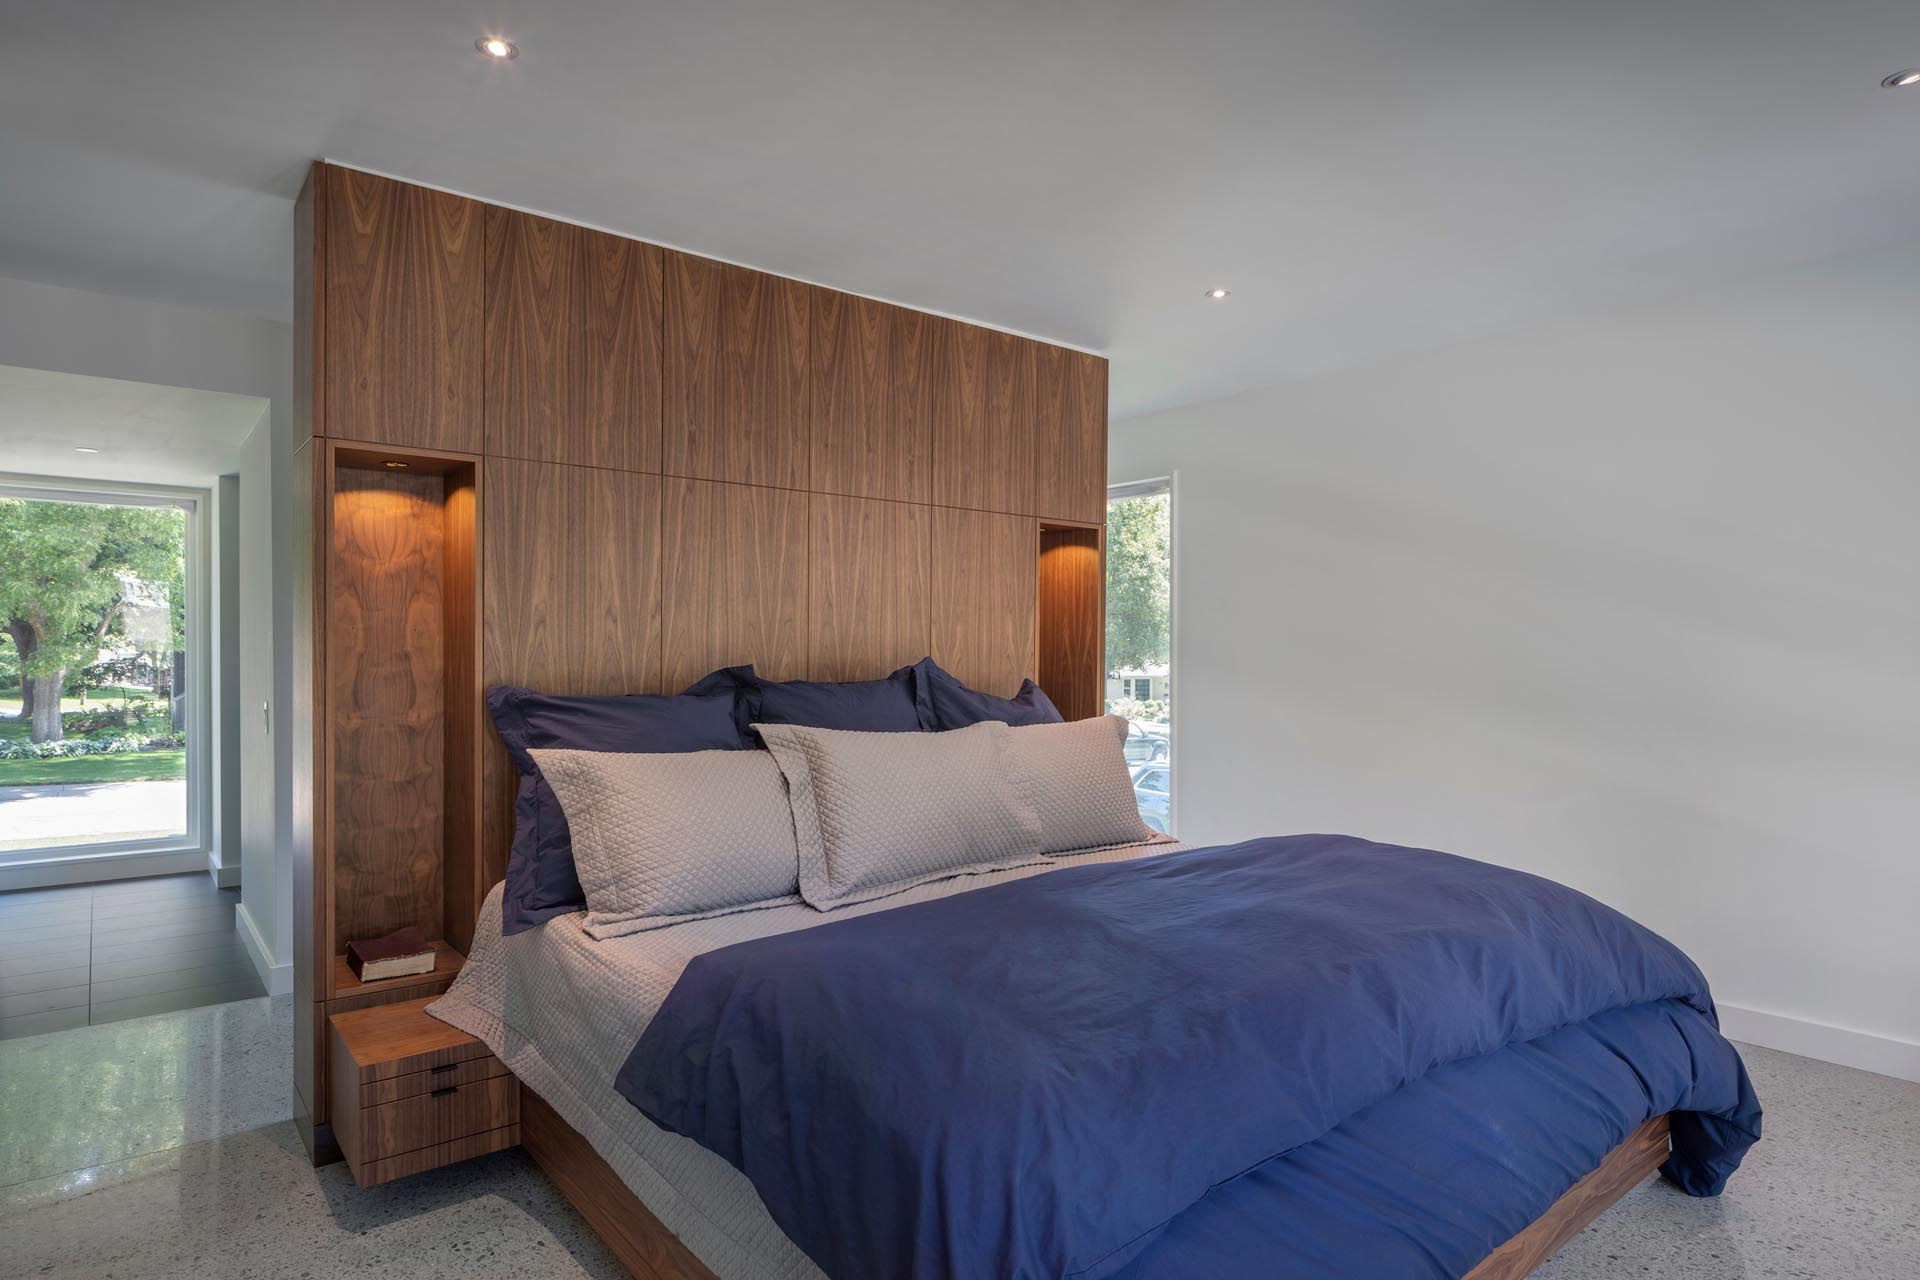 A modern bedroom with a a wood accent wall that has voids, allowing for built-in bedside lamps.